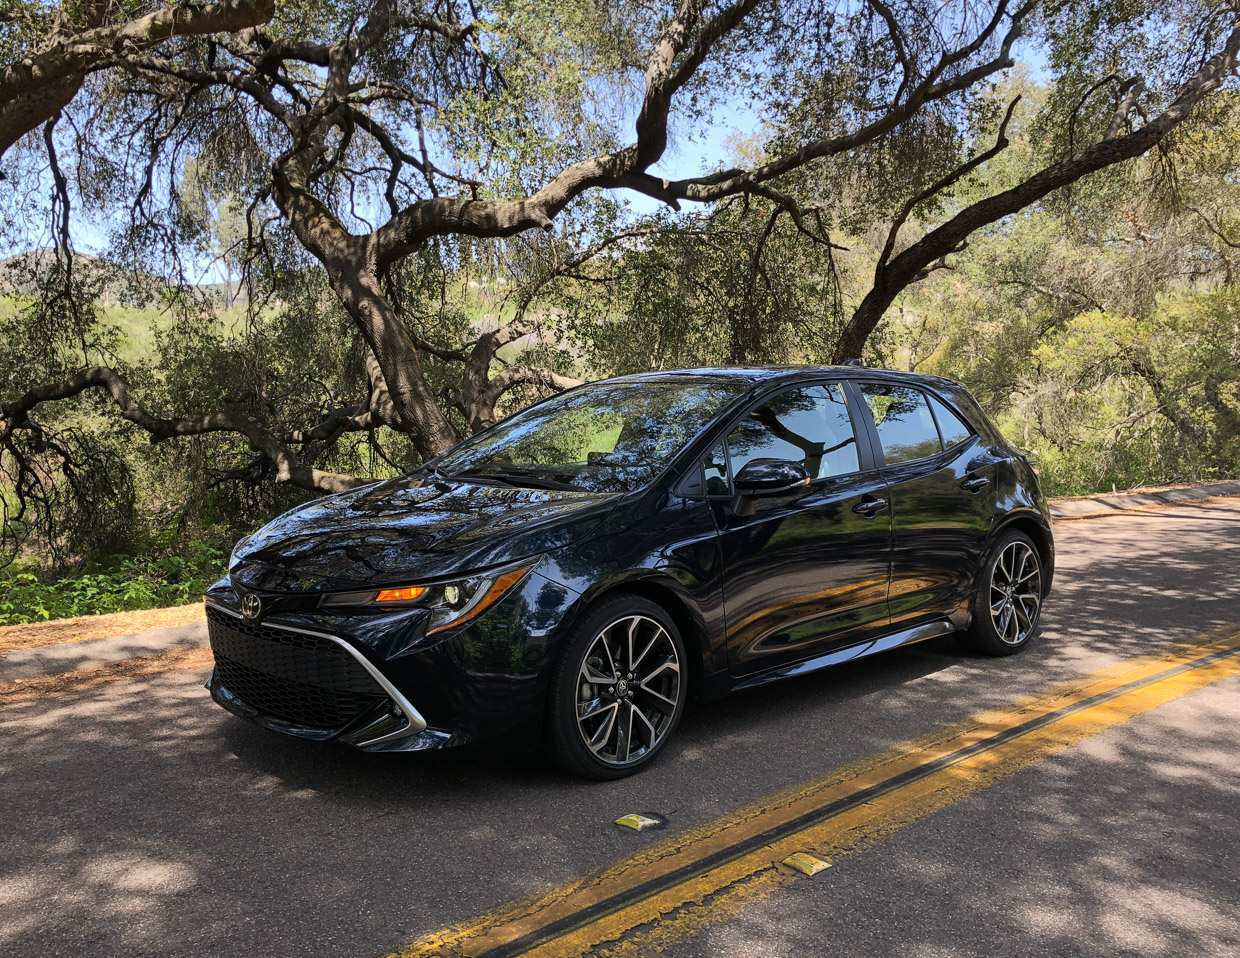 92 Gallery of 2019 Toyota Corolla Hatchback Review Performance and New Engine for 2019 Toyota Corolla Hatchback Review